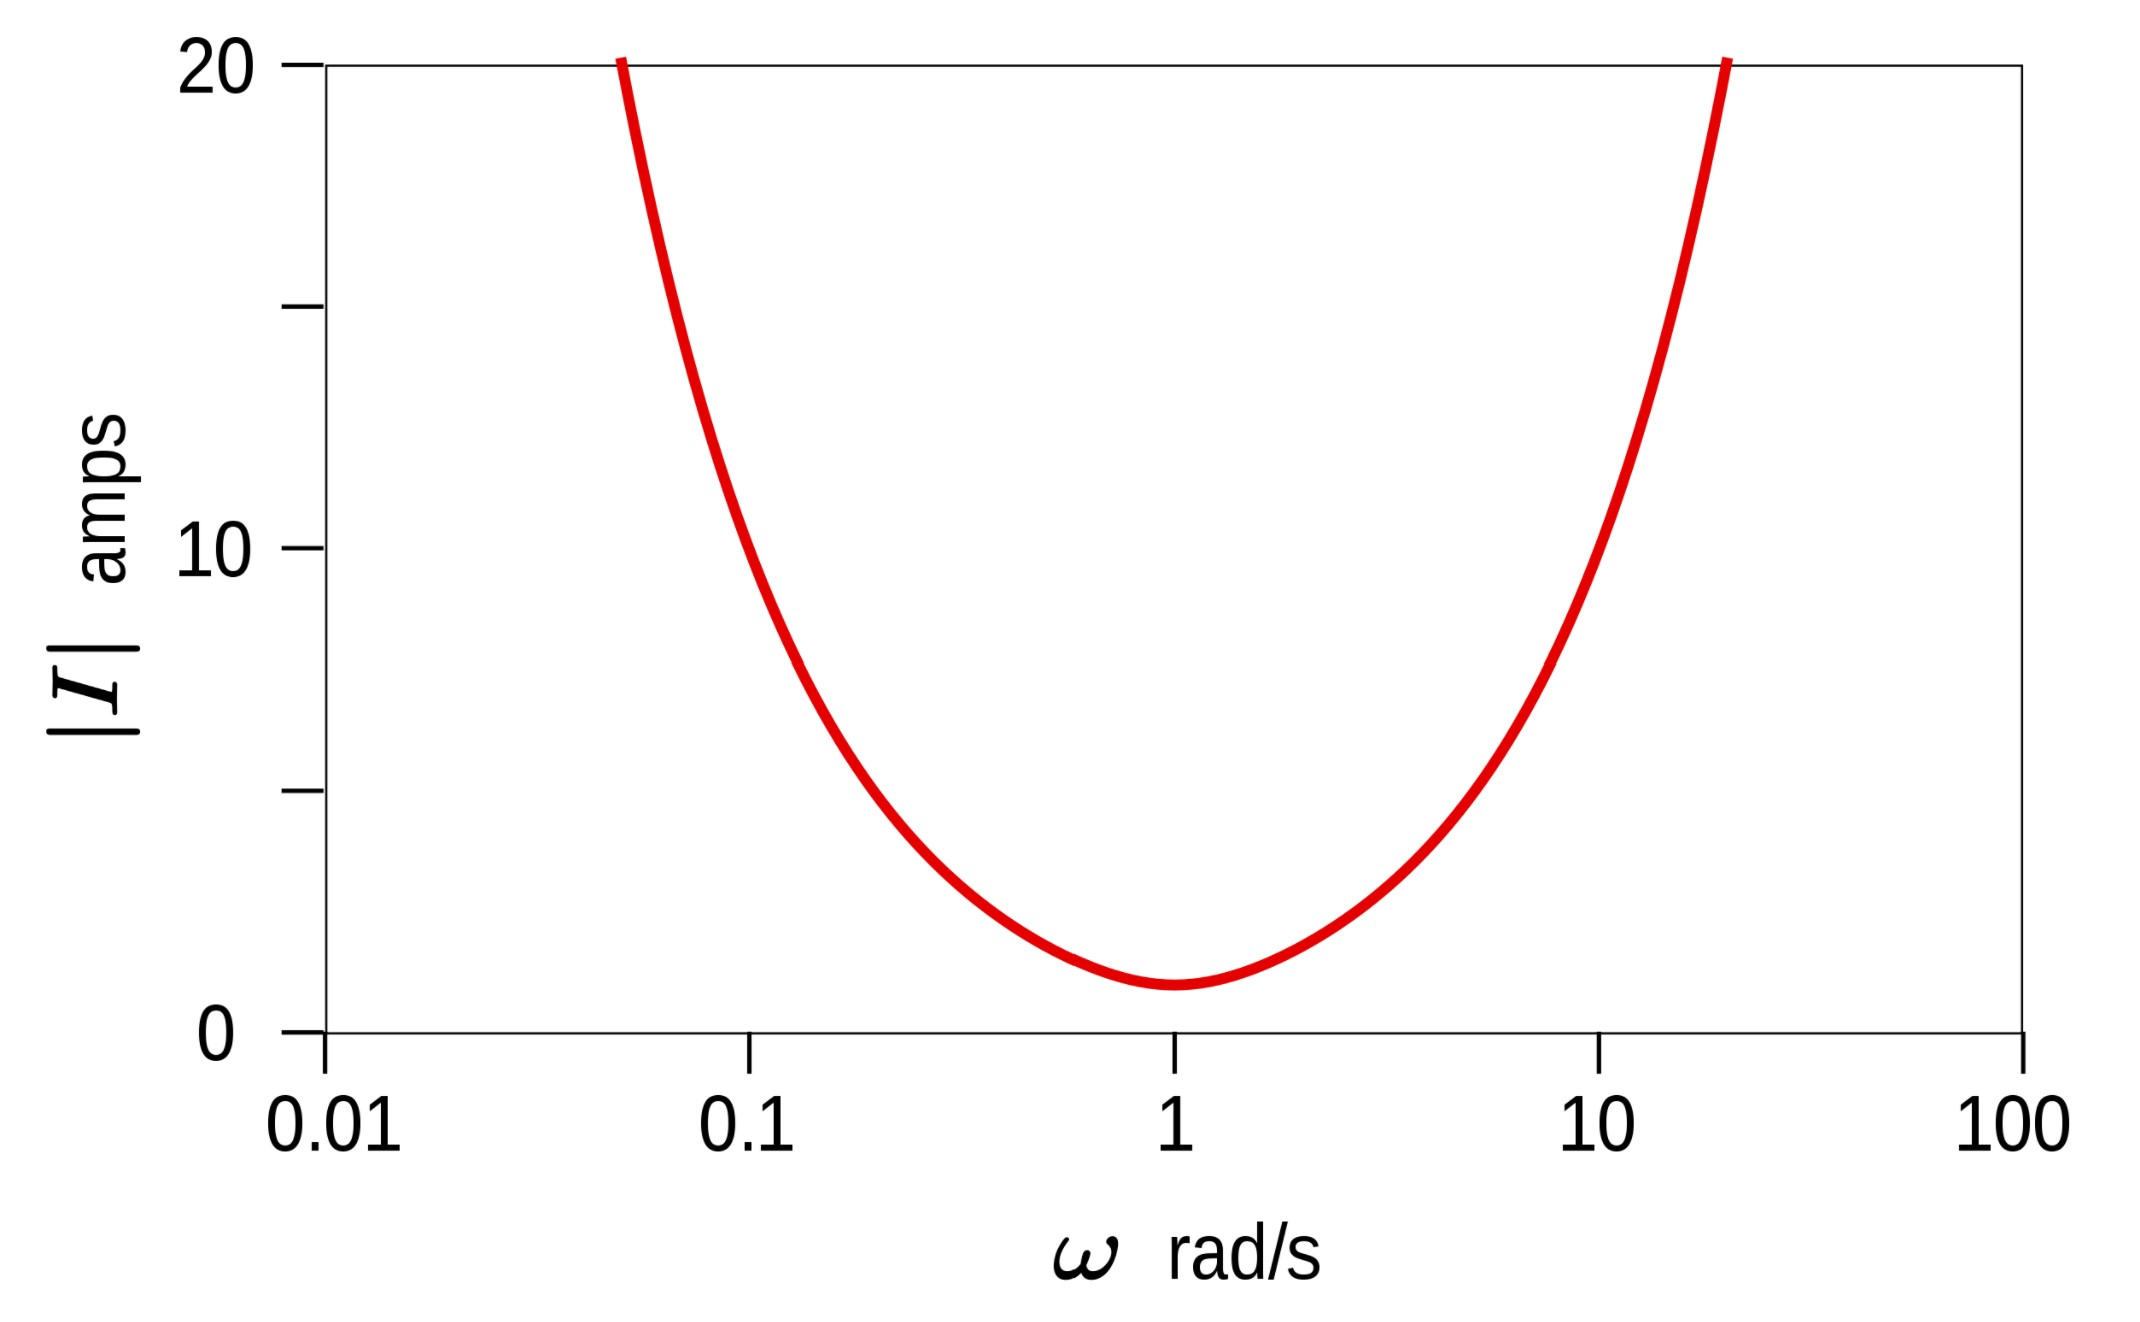 Parallel RLC circuit minimum current at the resonant frequency